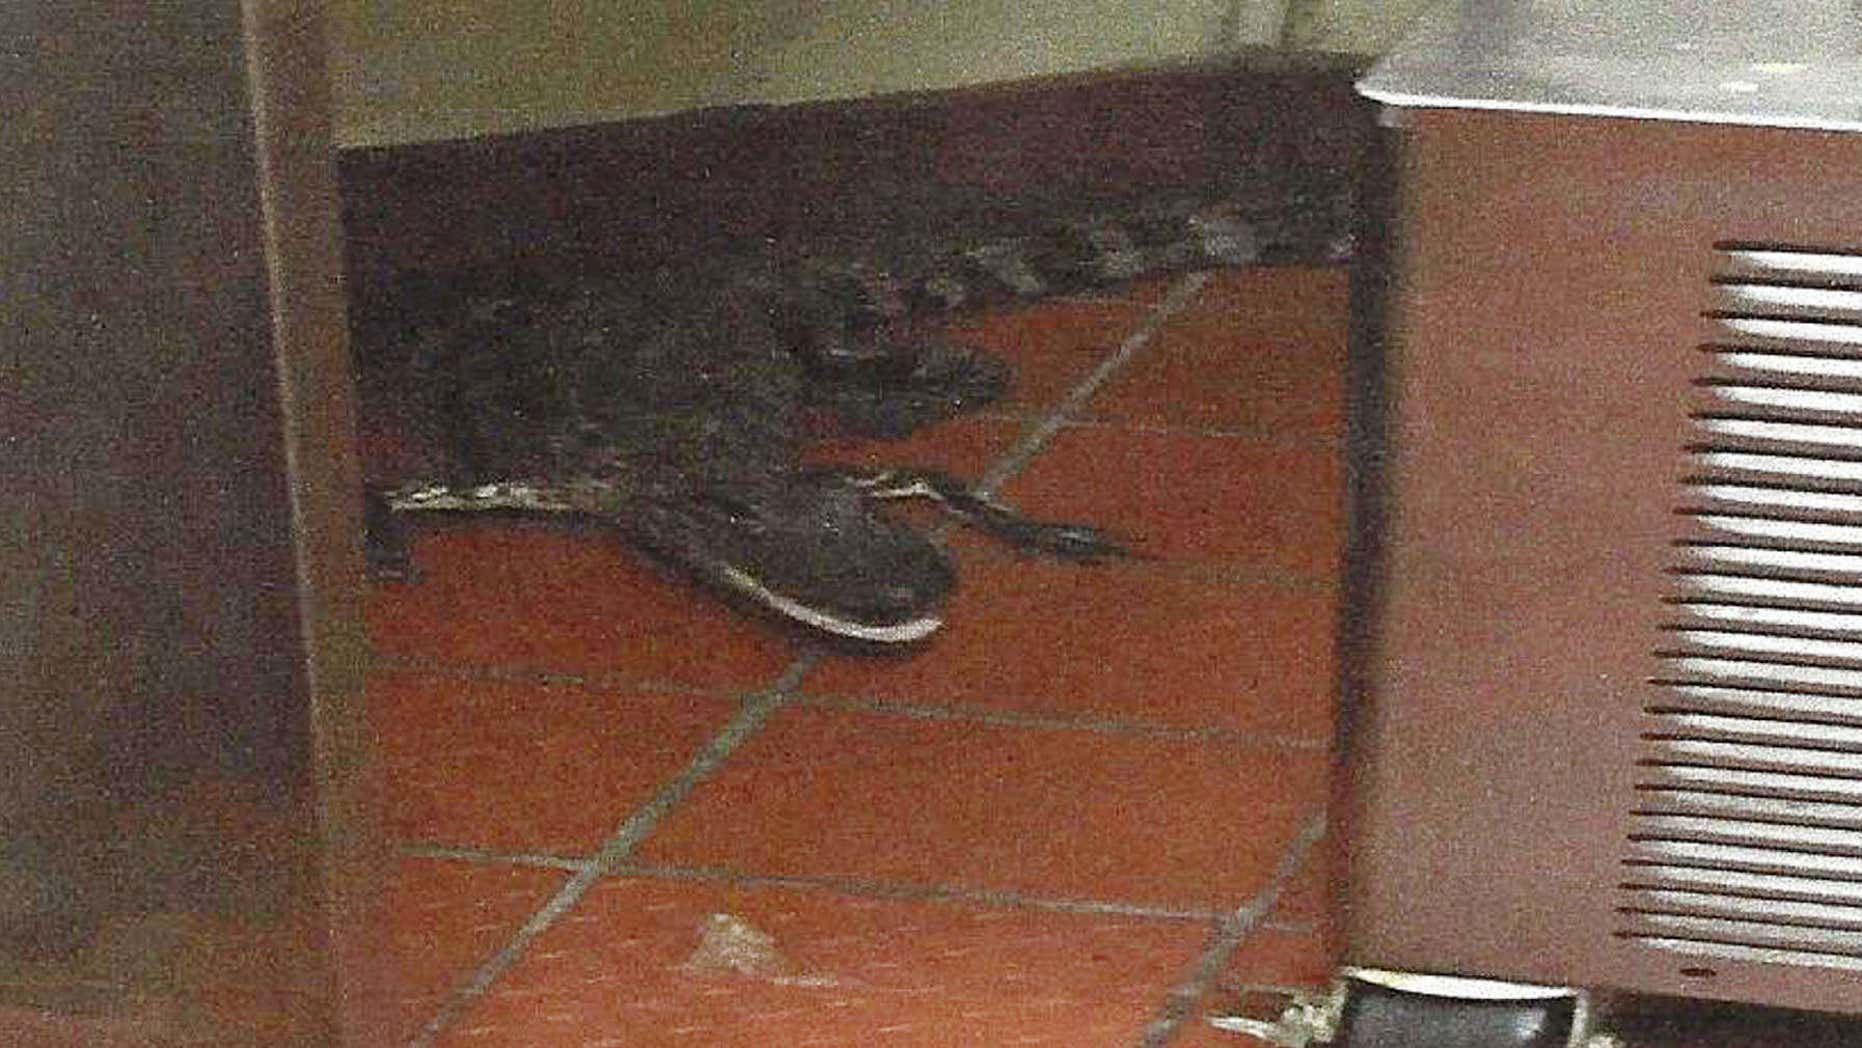 This Oct. 12, 2015 photo provided by the Florida Fish and Wildlife Conservation Commission shows an alligator in the kitchen of a Wendy's Restaurant in Loxahatchee, Fla.